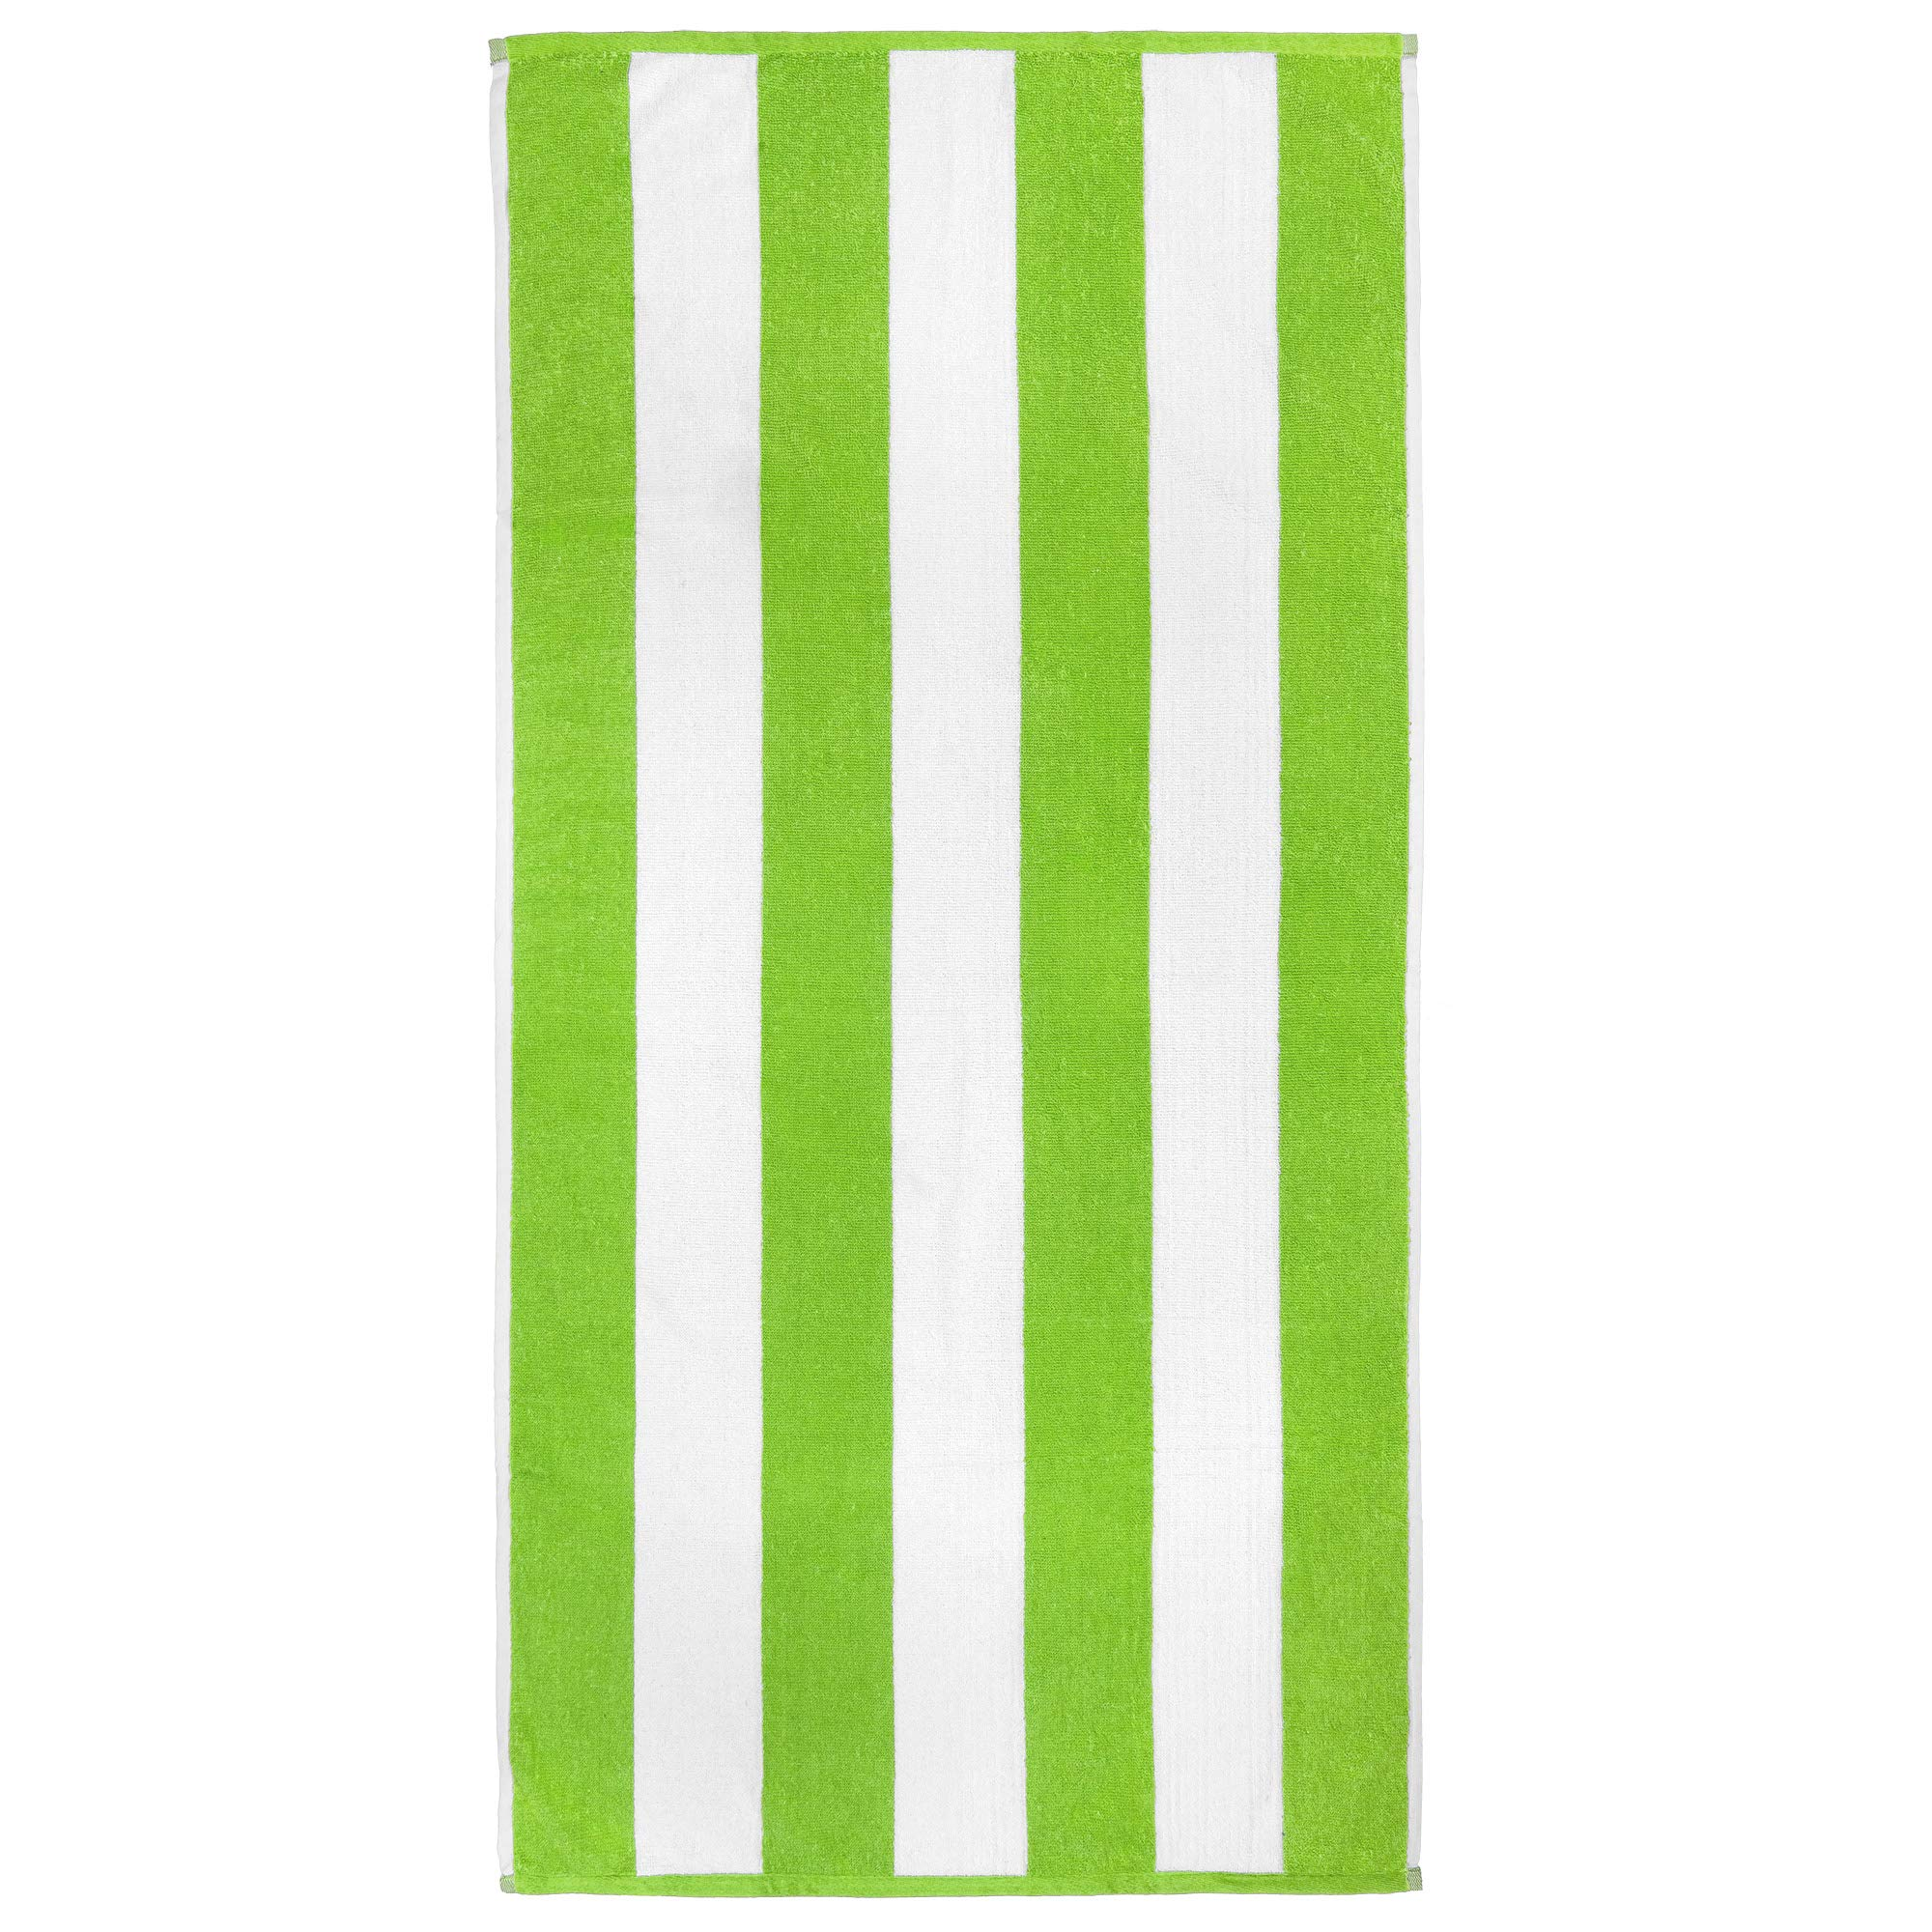 Cabana Beach and Pool Towel 6 Pack - 30in x 60in Soft and Absorbent Terry Loop (Royal, Turquoise, Green, Yellow, Orange, Pink) by Softerry (Image #4)